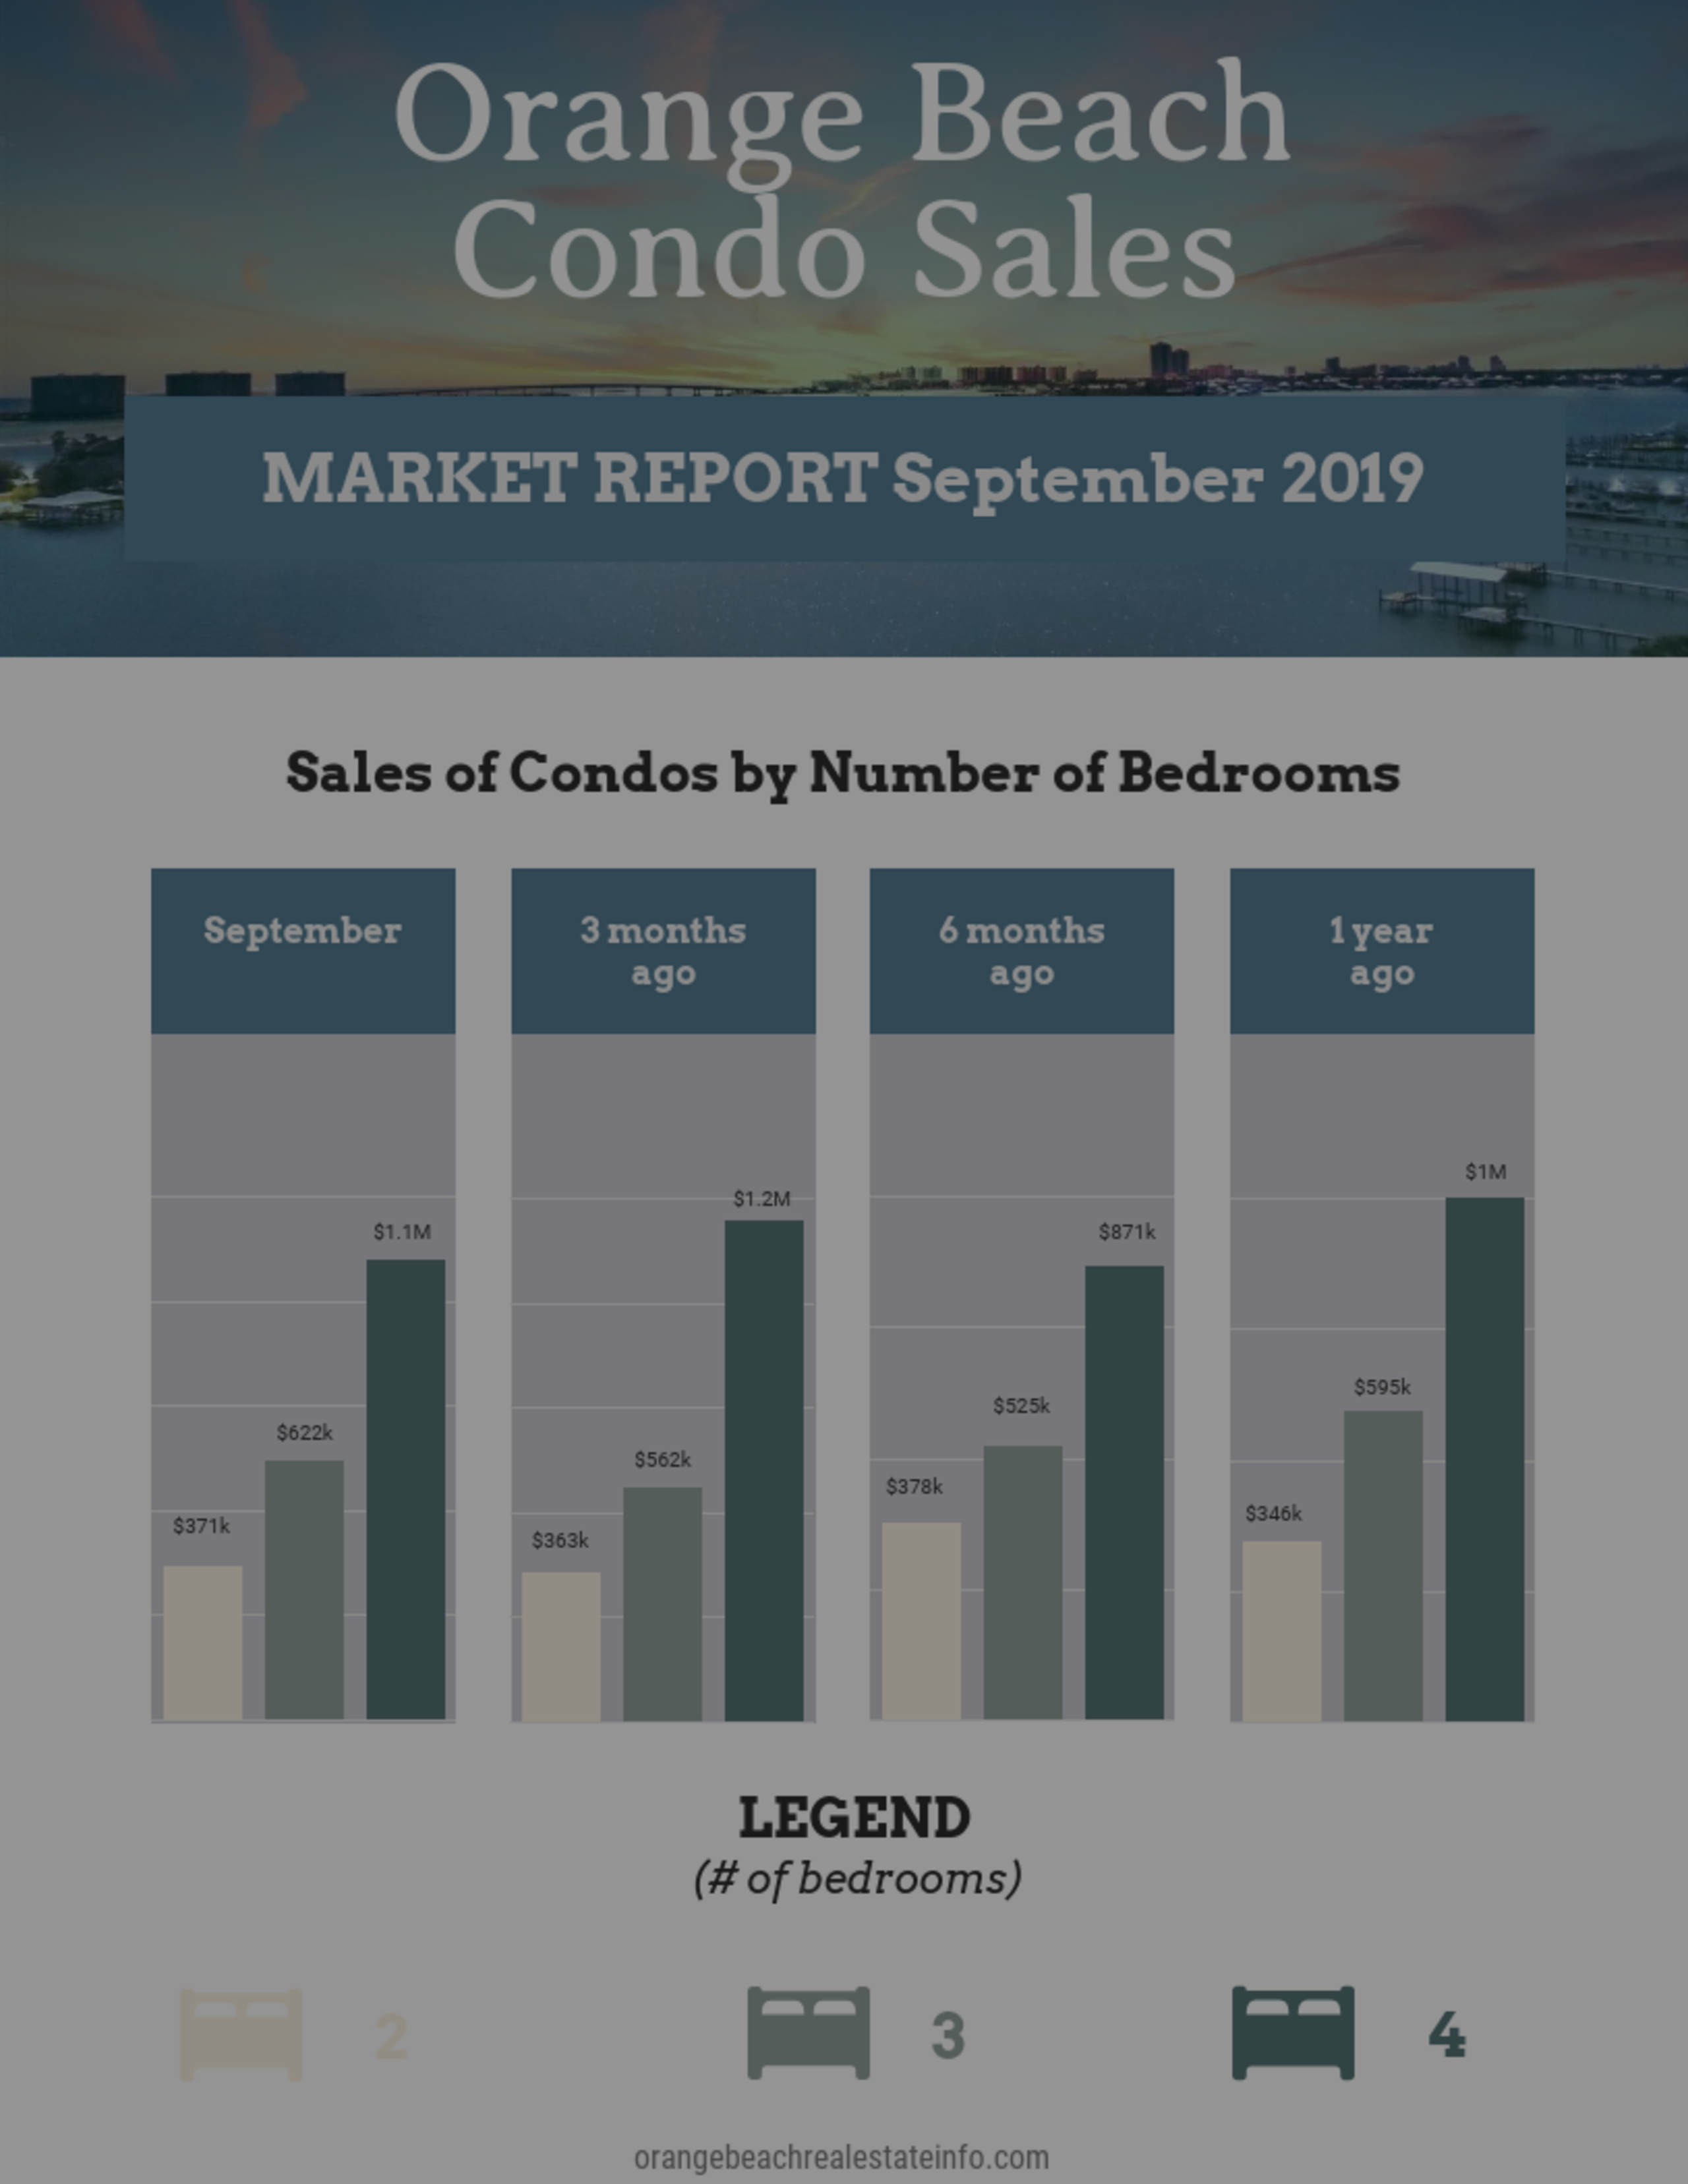 Condo Sales by Number of Bedrooms – Sept 2019